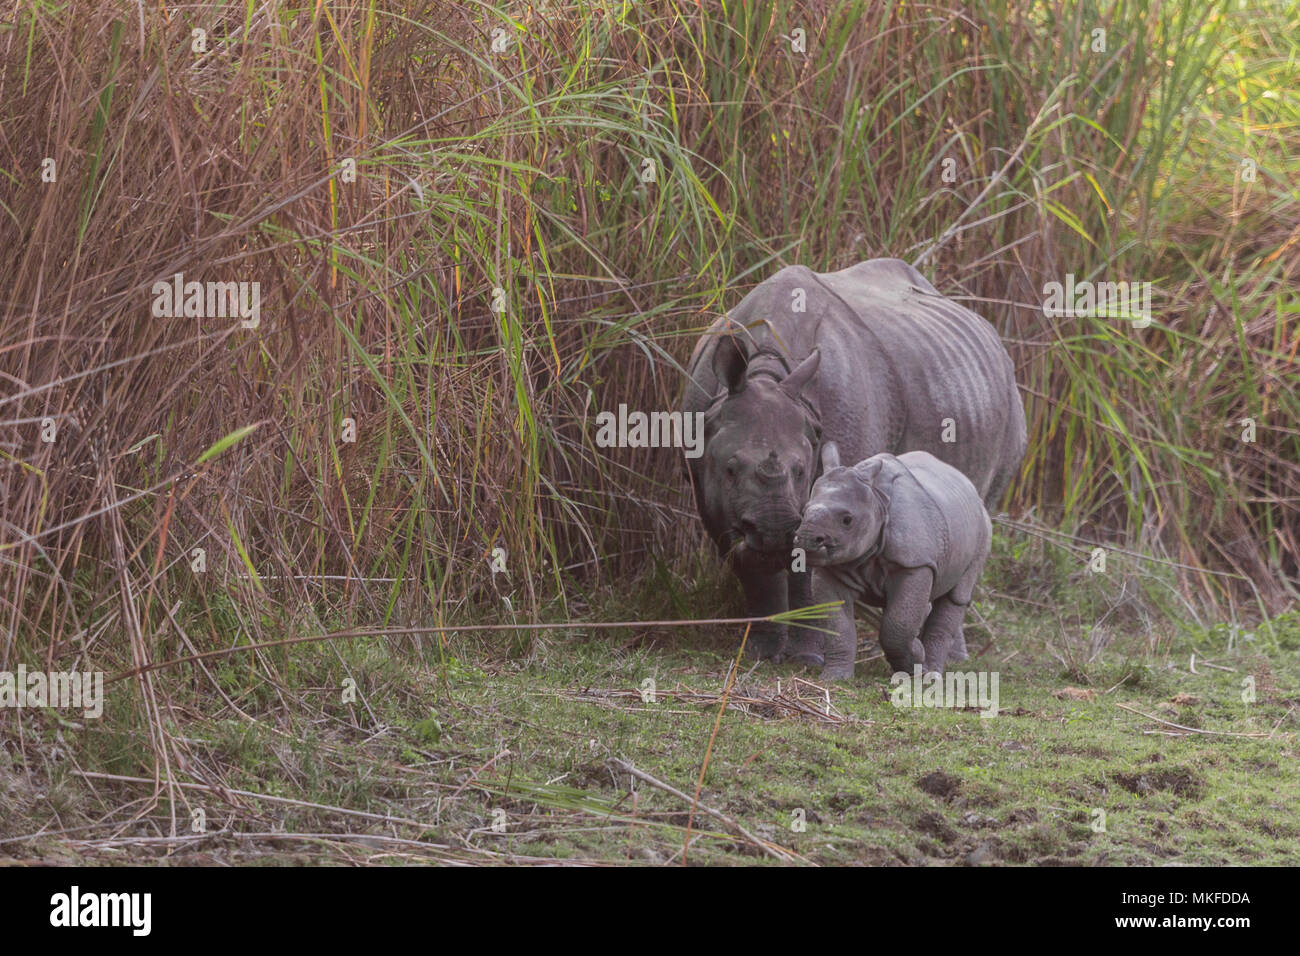 Asian One-horned rhino or Indian Rhinoceros or Greater One-horned Rhinoceros (Rhinoceros unicornis) mother and baby, Kaziranga National Park, State of Assam, India - Stock Image